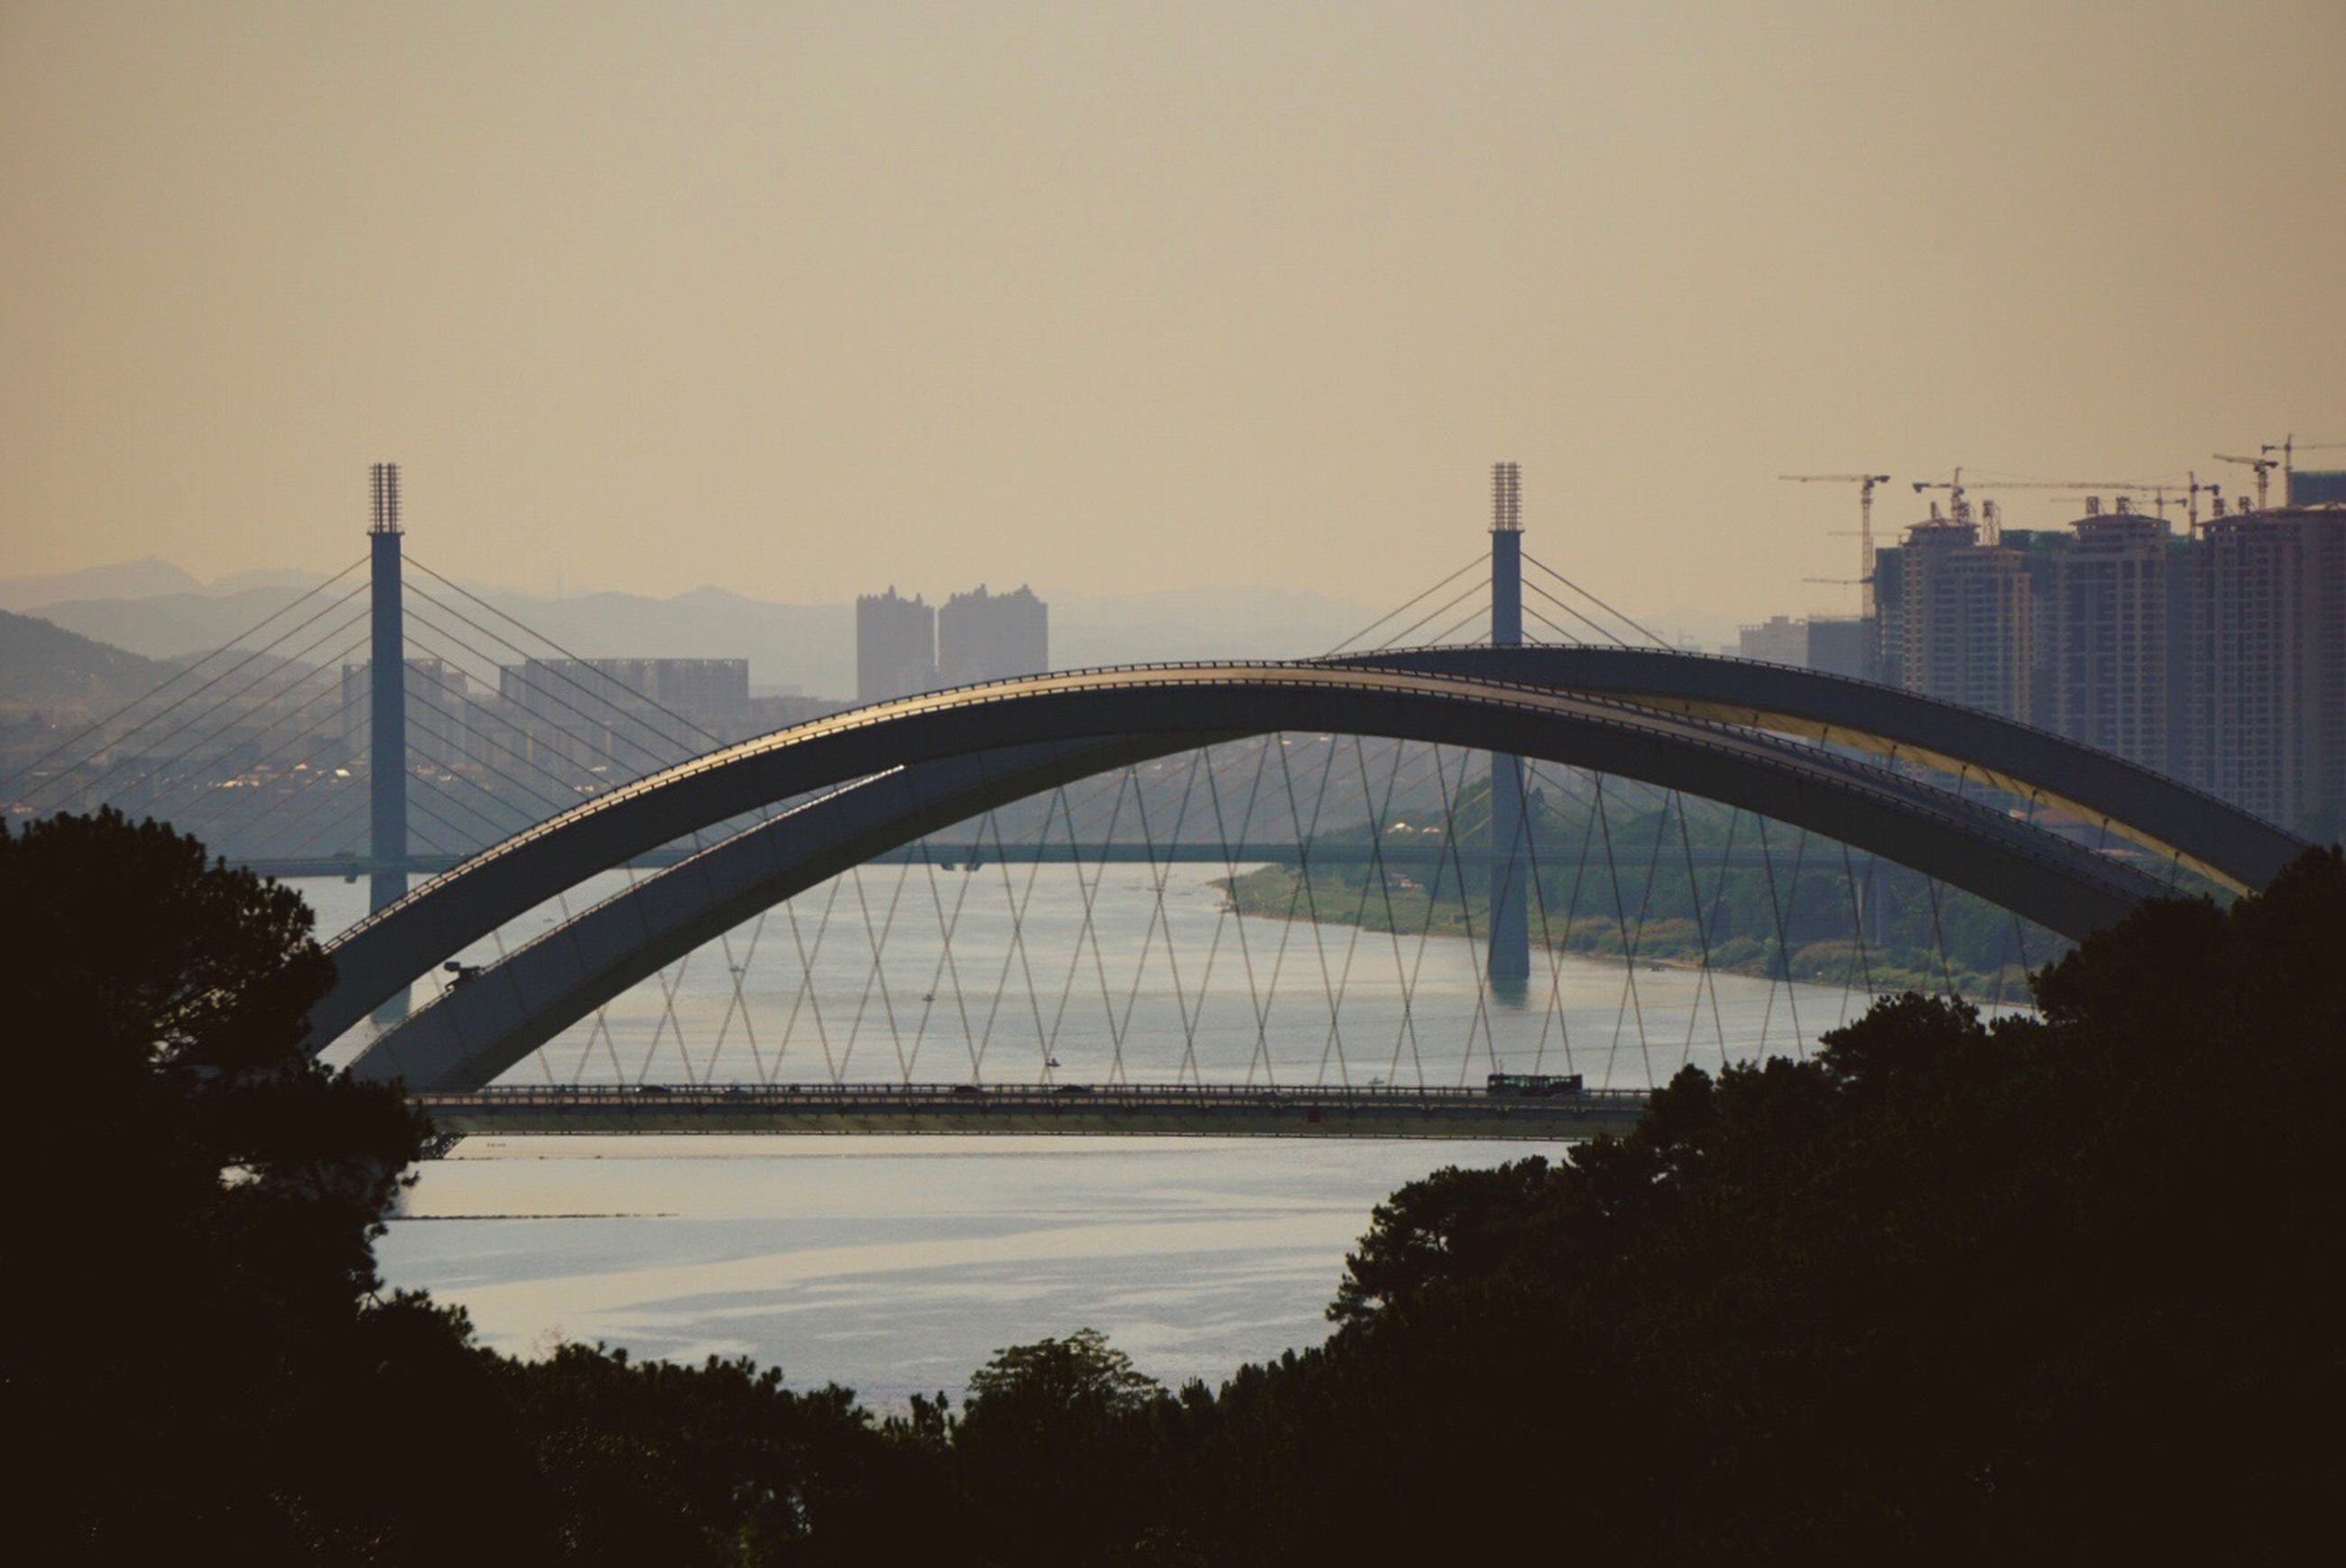 bridge - man made structure, sunset, connection, city, suspension bridge, travel destinations, transportation, outdoors, water, tourism, cityscape, architecture, sky, river, urban skyline, business finance and industry, no people, day